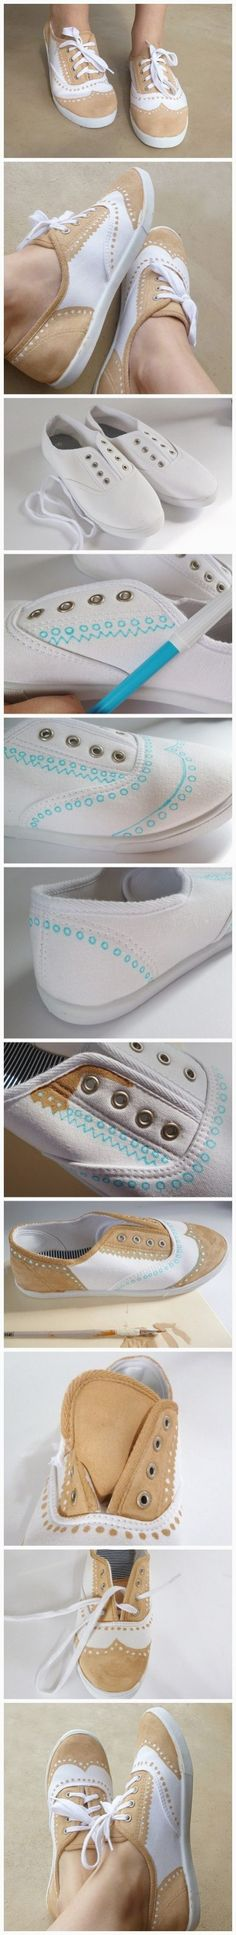 La sneaker coloration Cute Crafts, Crafts To Do, Diy Crafts, Diy Clothes Refashion, Diy Clothing, Shoe Refashion, Boutique Clothing, Ideas Paso A Paso, Do It Yourself Inspiration